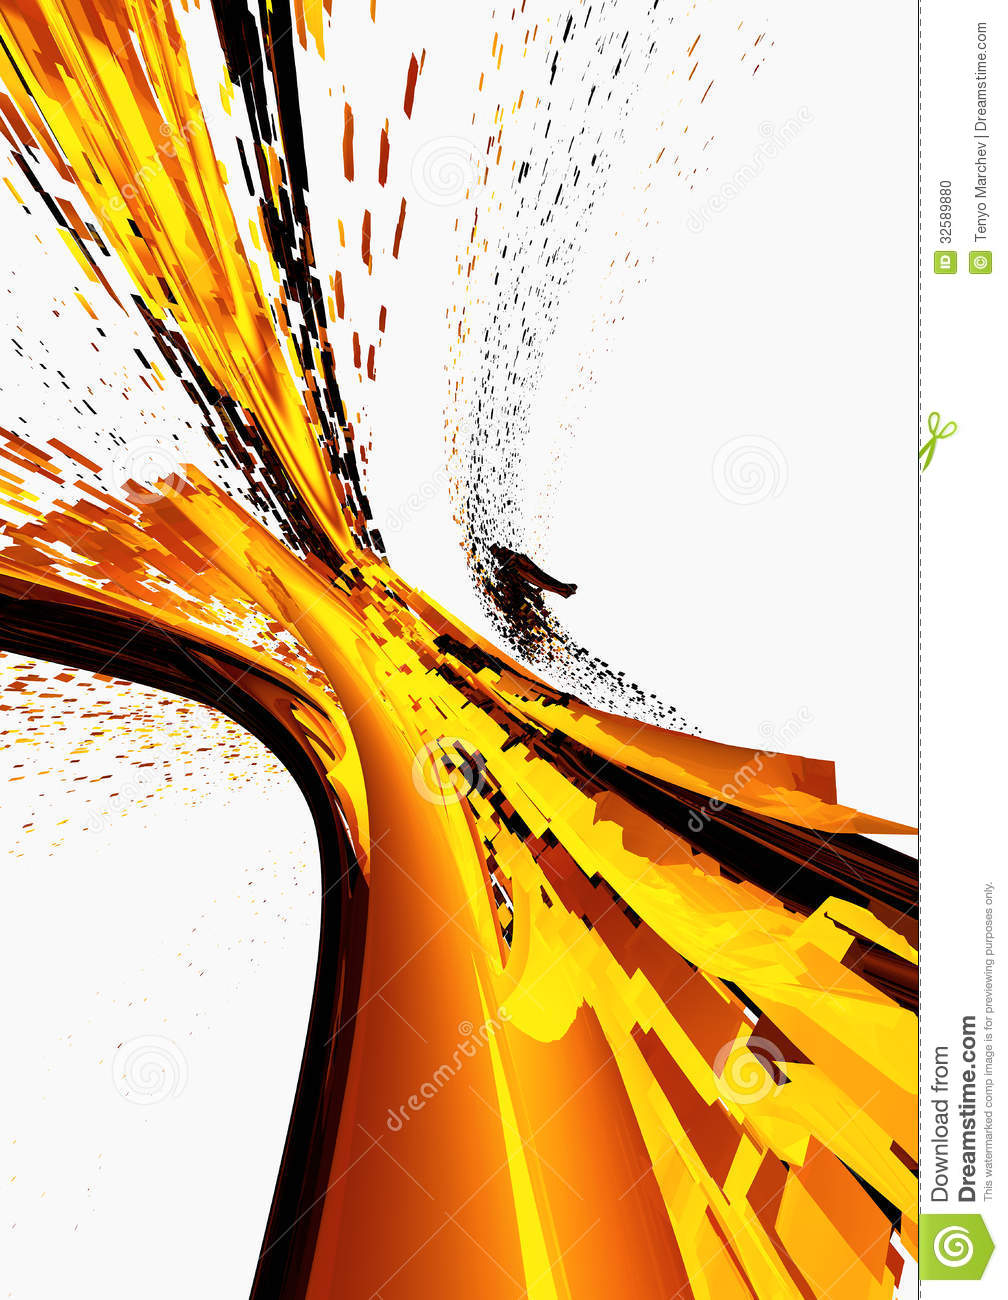 Pics photos 3d colorful abstract background design - Abstract Background Design